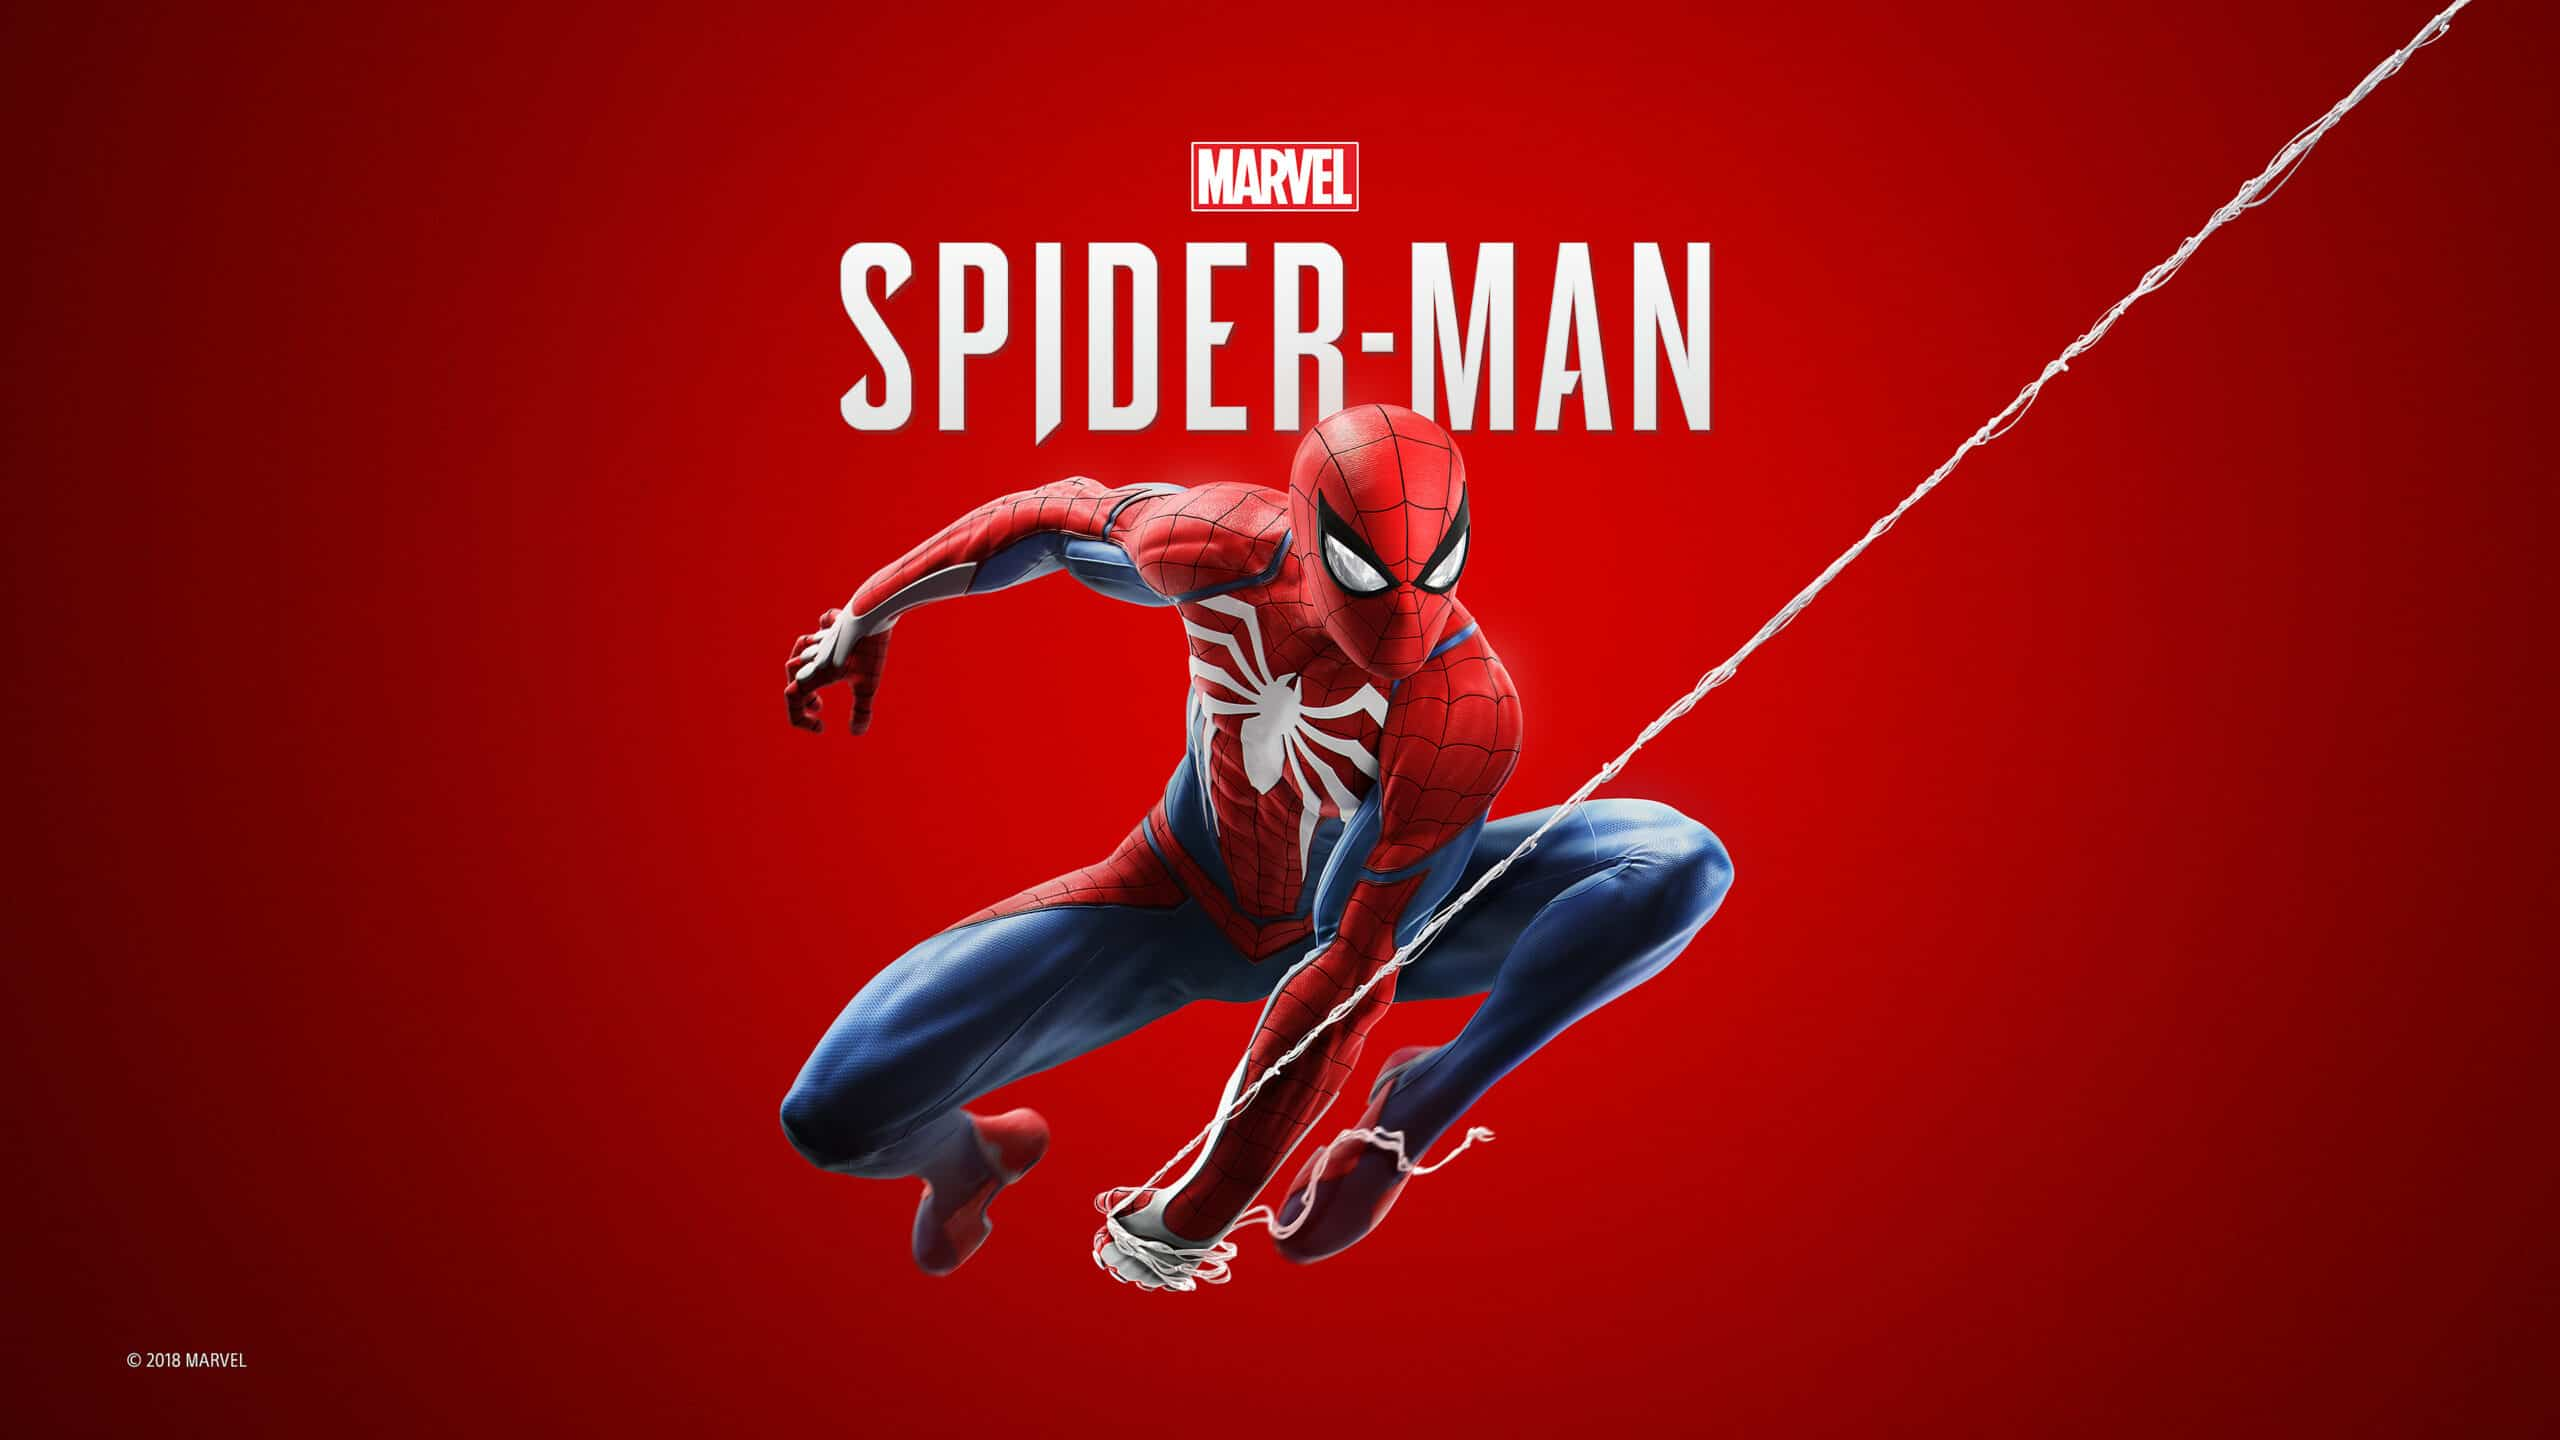 Best Selling Ps4 Games - Spider-Man